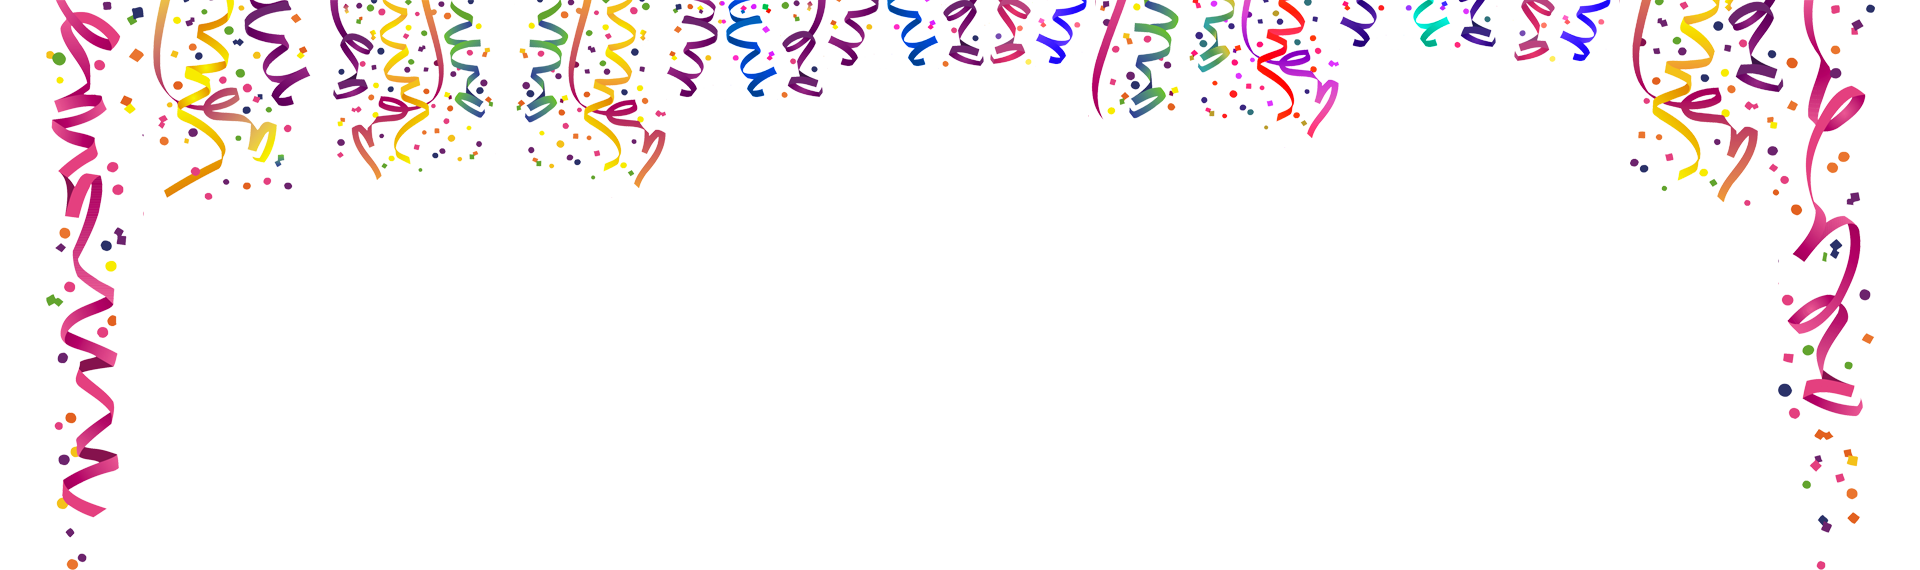 collection of clipart. Confetti border png